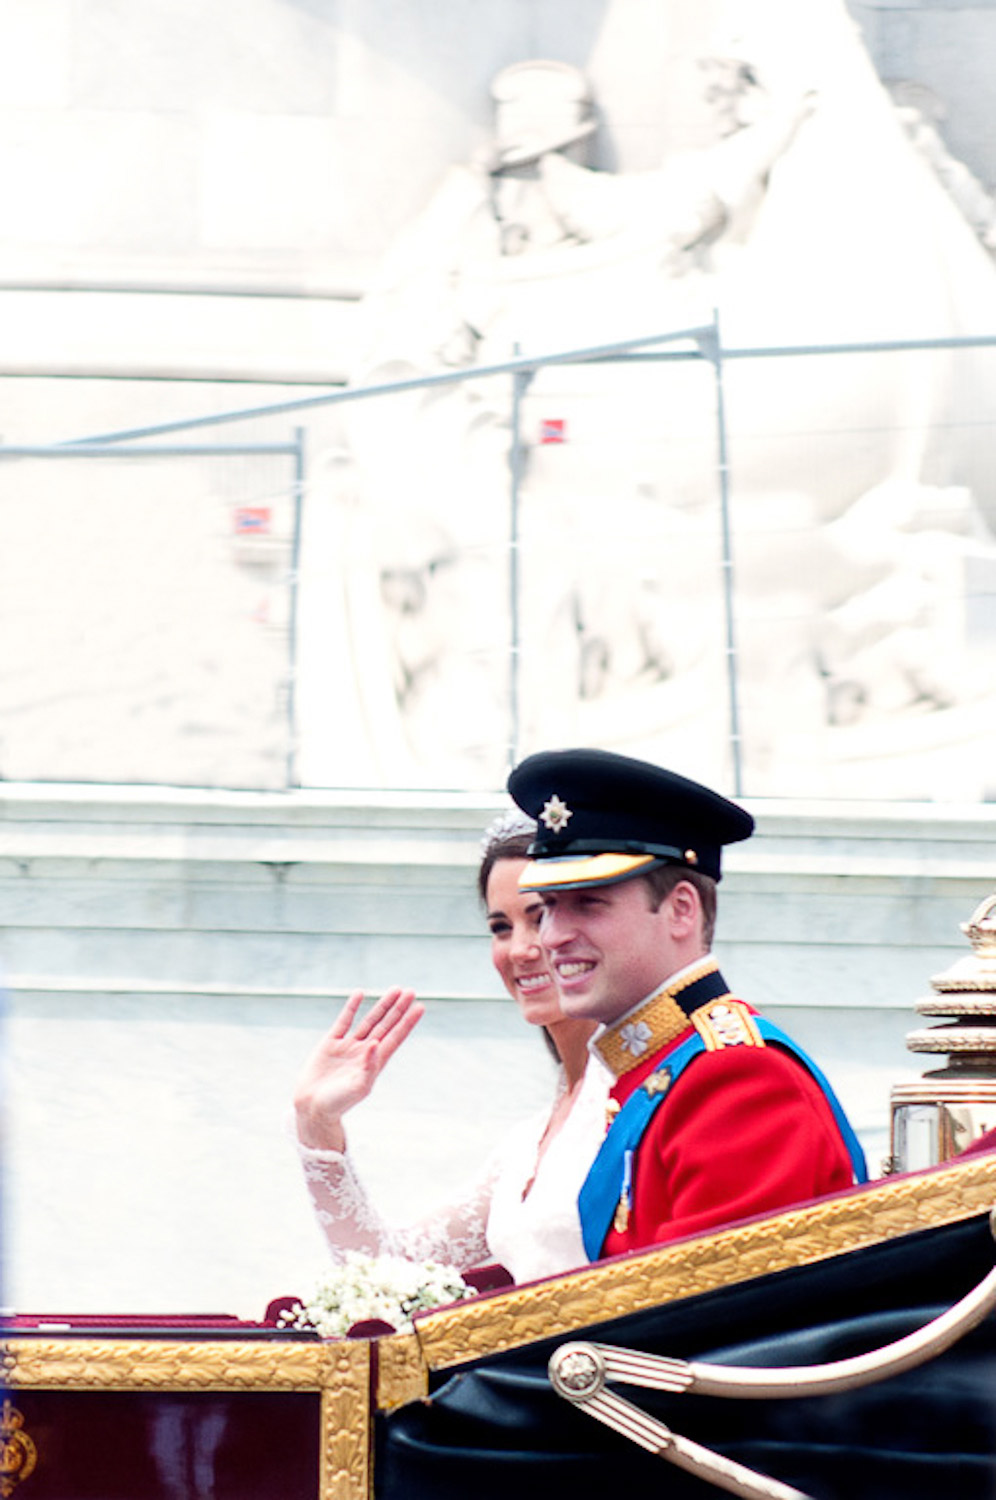 Prince-William-and-Kate's-Wedding---Reportage-22.jpg